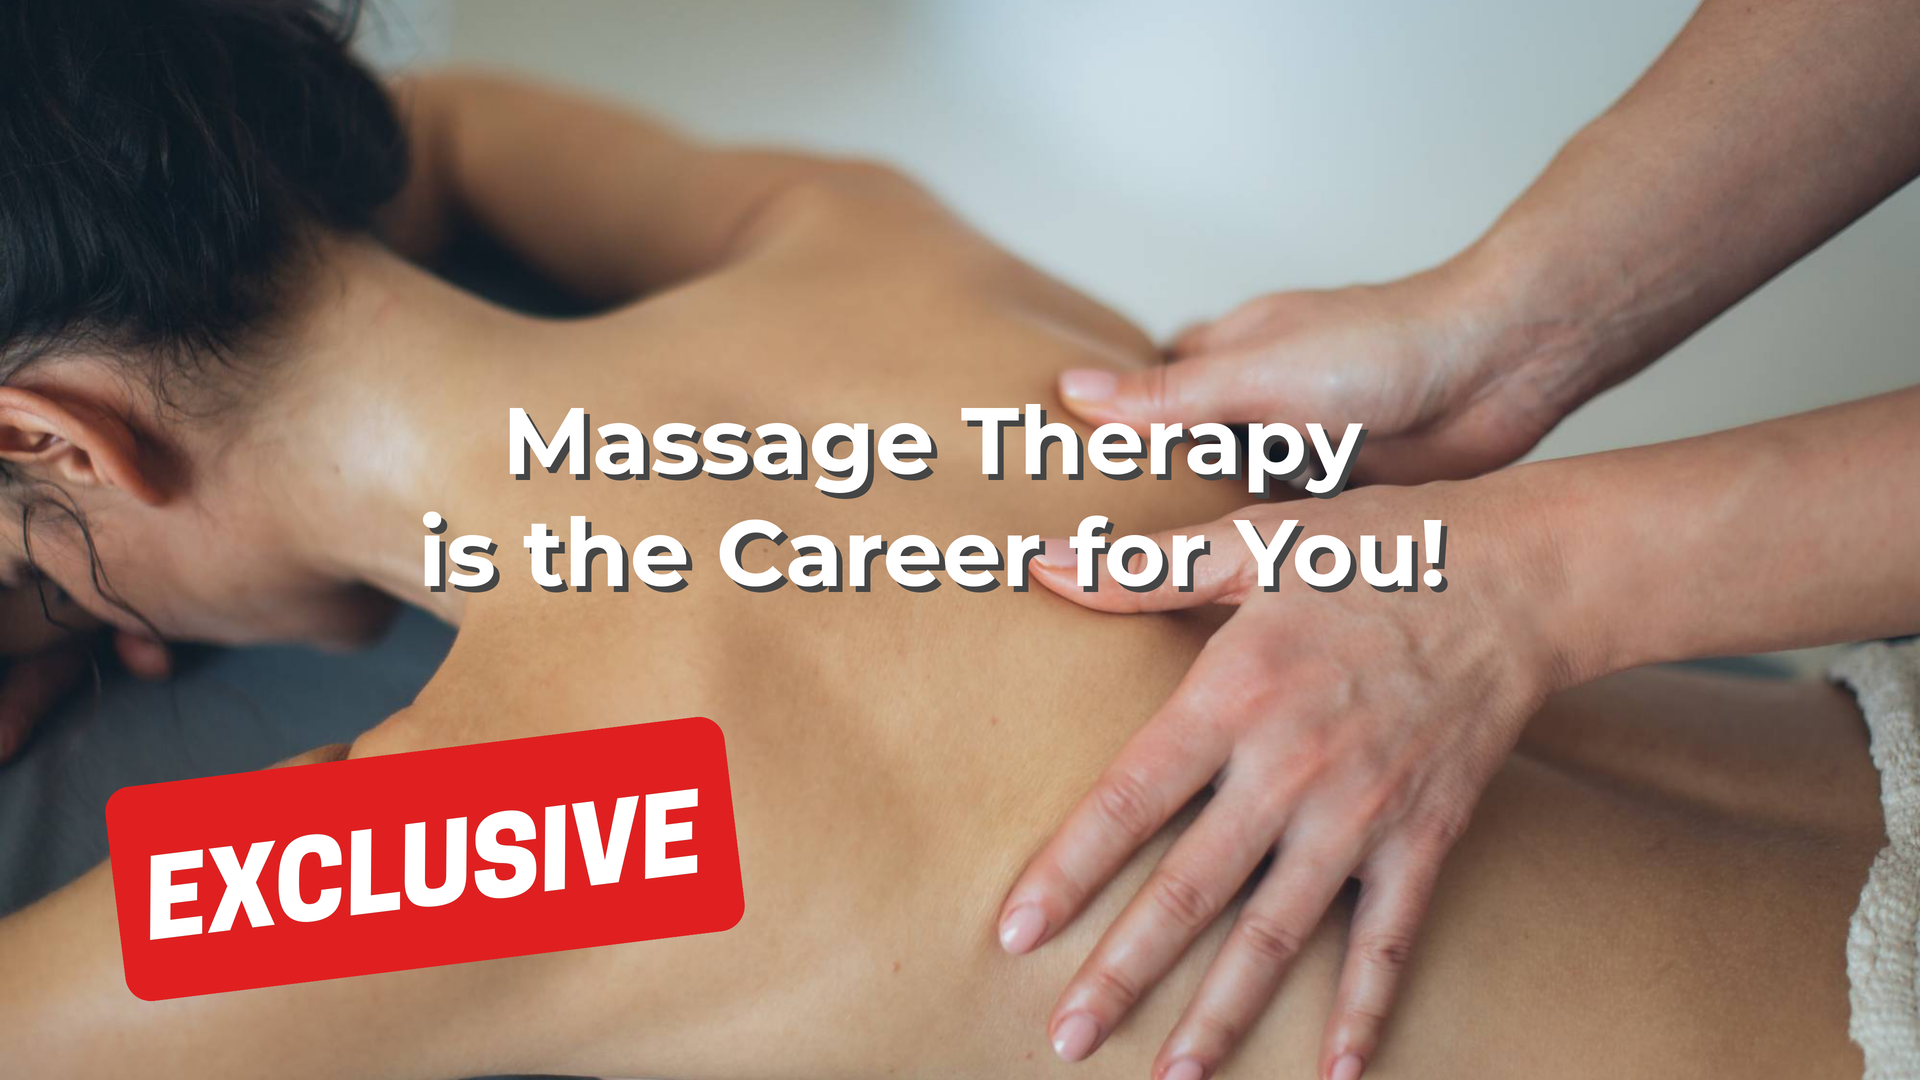 Massage Therapy is the Career for You